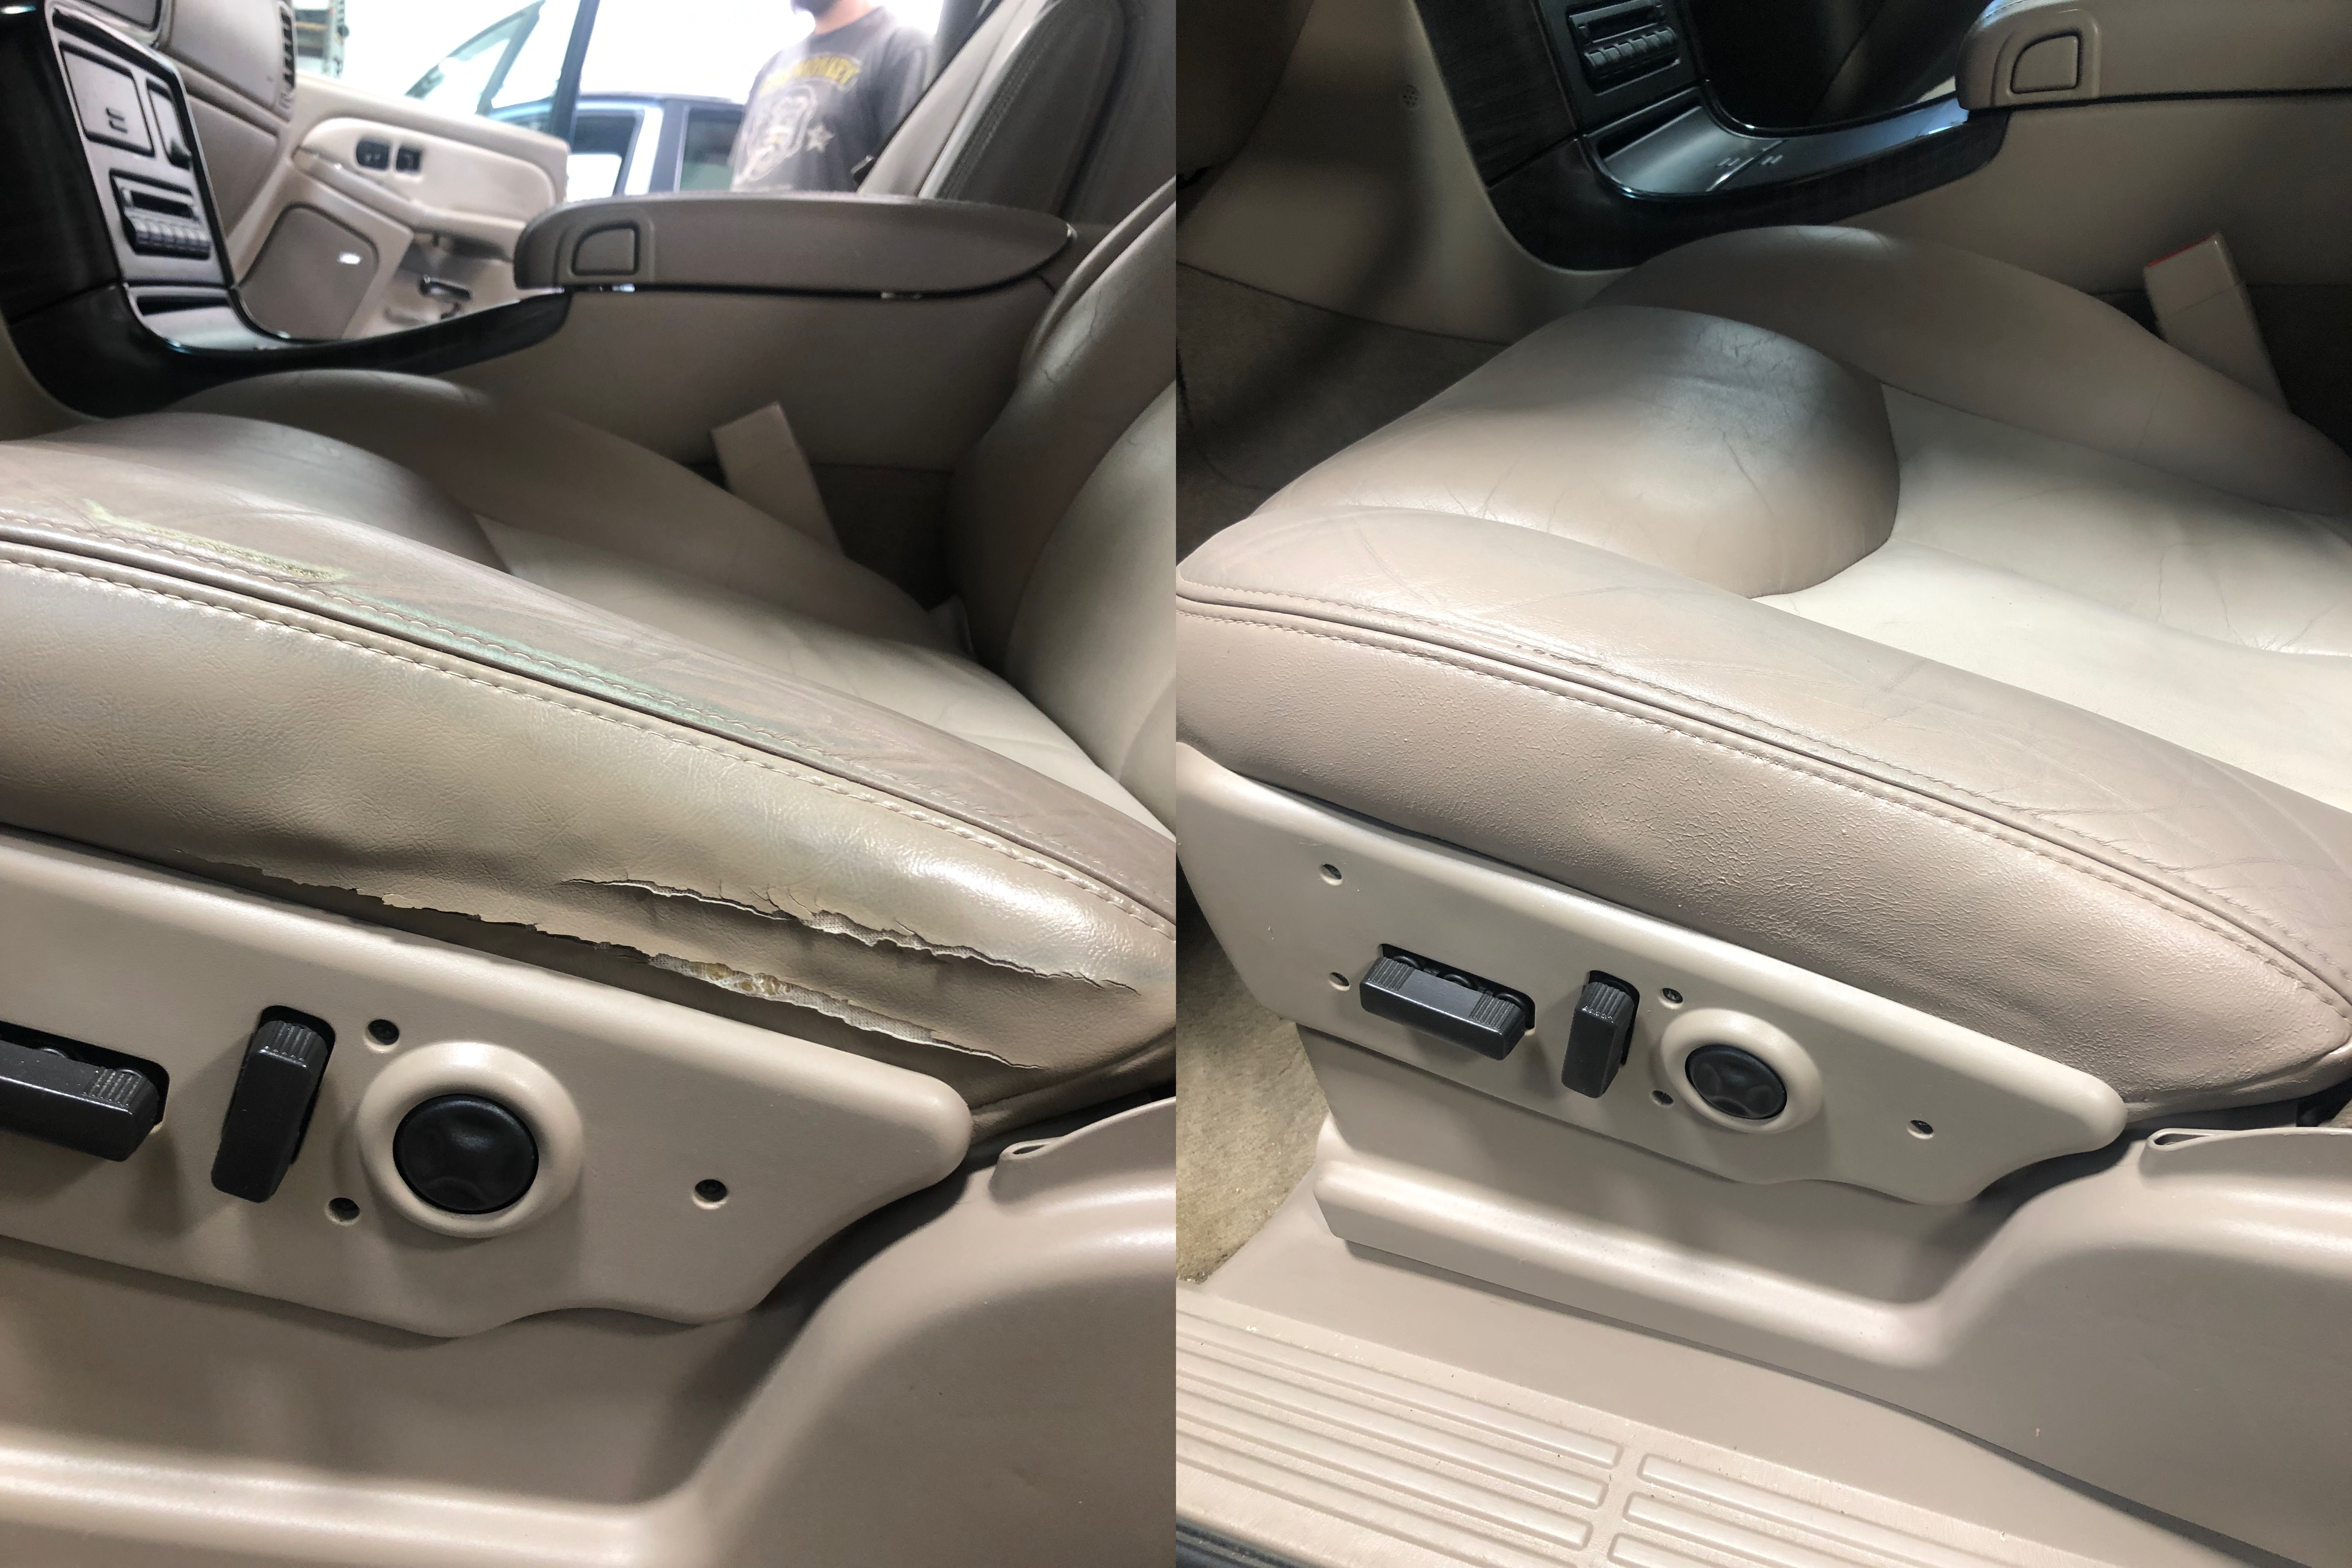 Recon interior - before and after